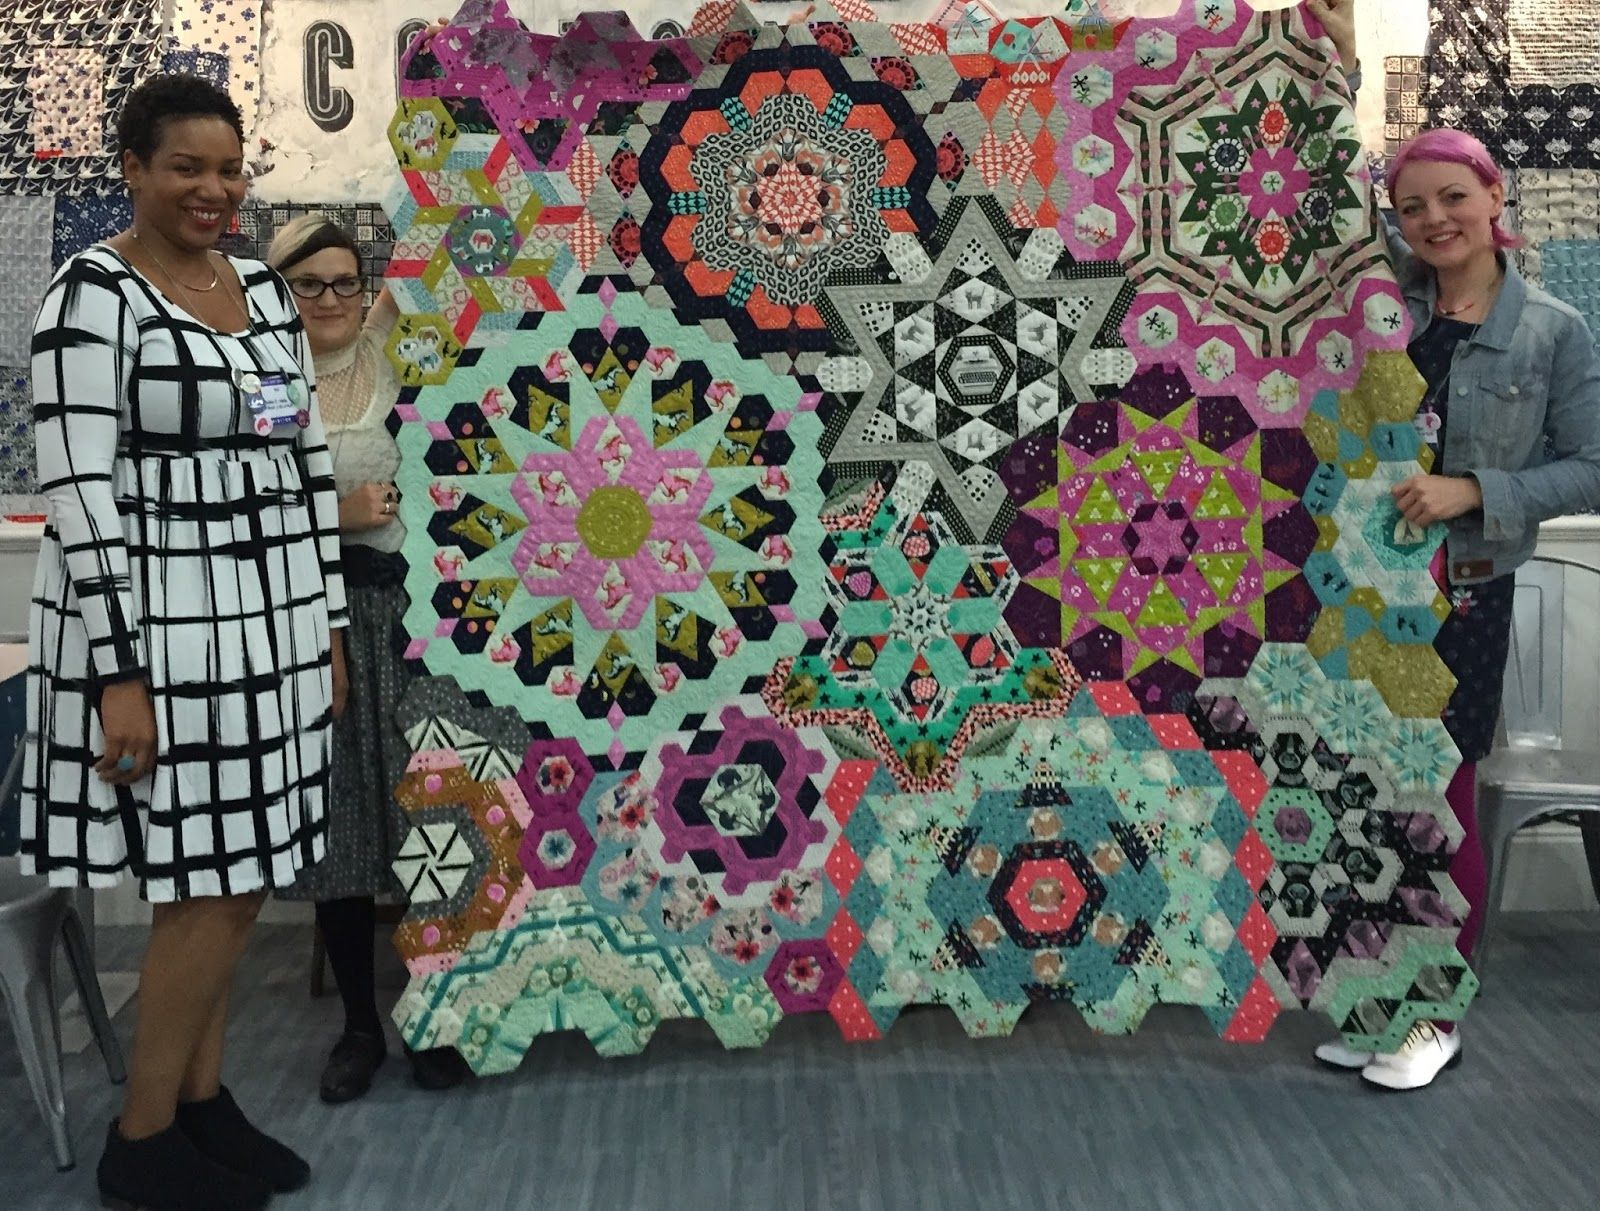 Yes it is finished Better yet it was a big hit at Quilt Market in